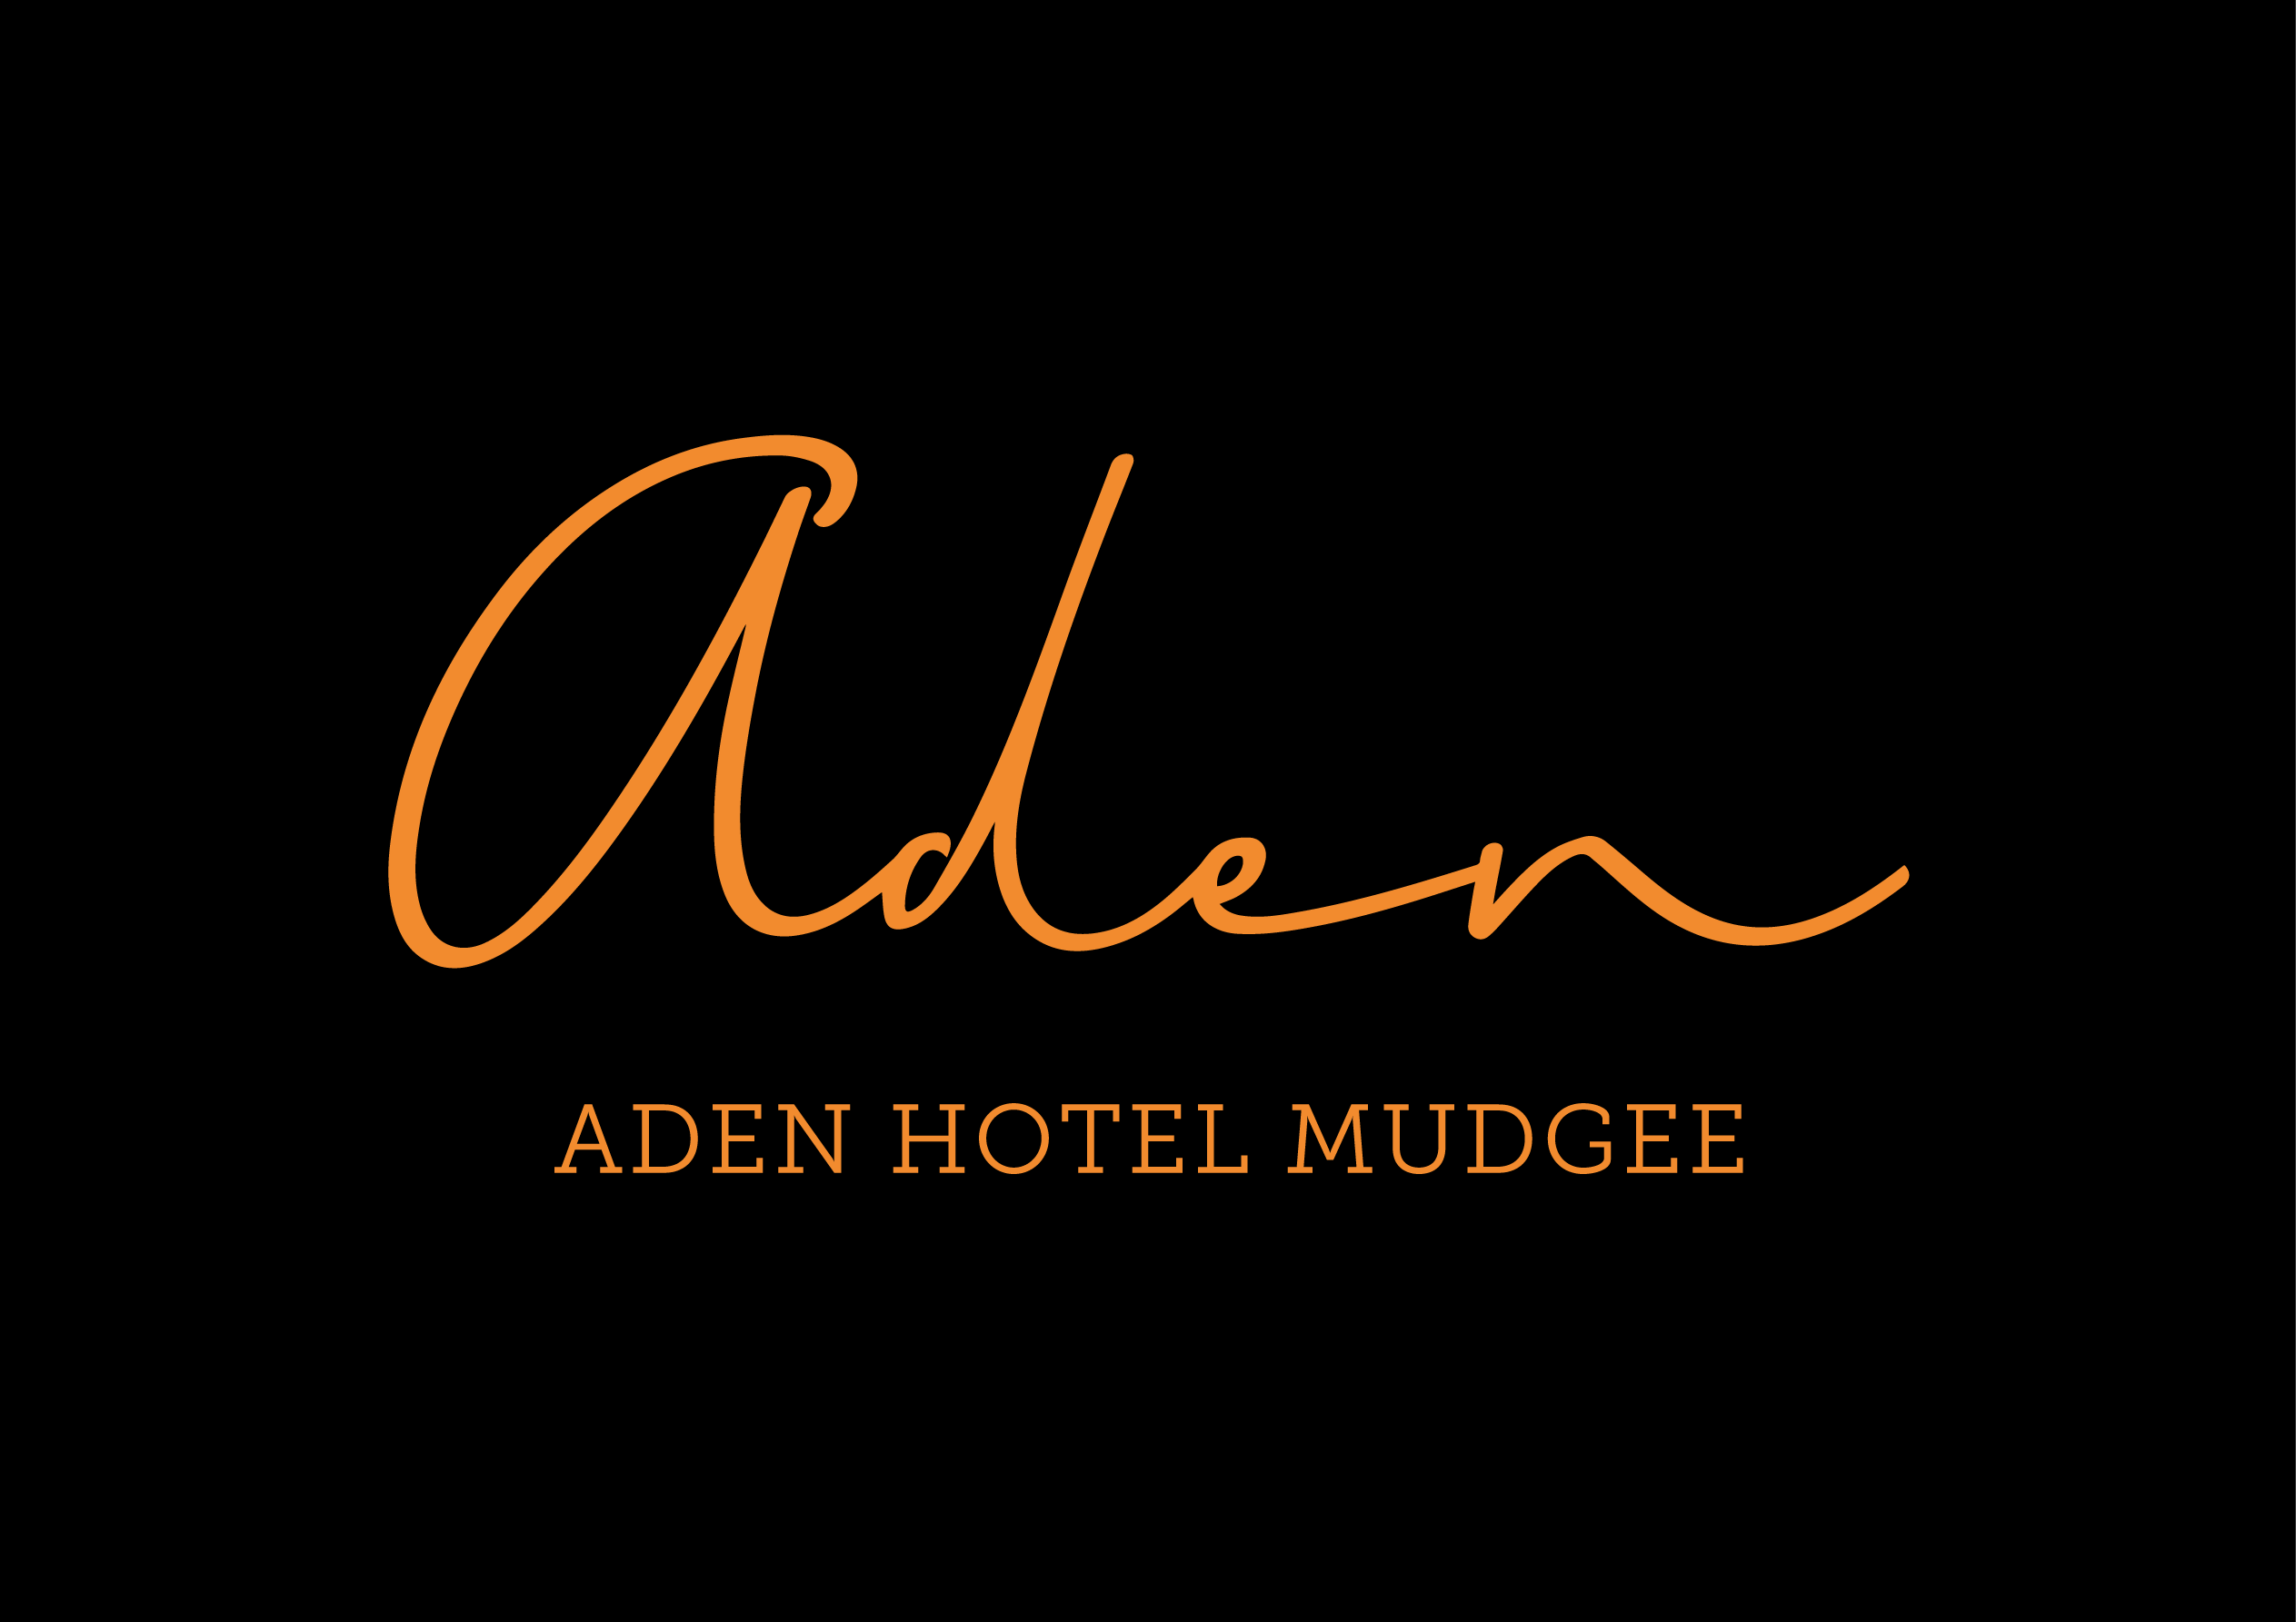 Comfort Inn Aden Hotel Mudgee - Newcastle Accommodation